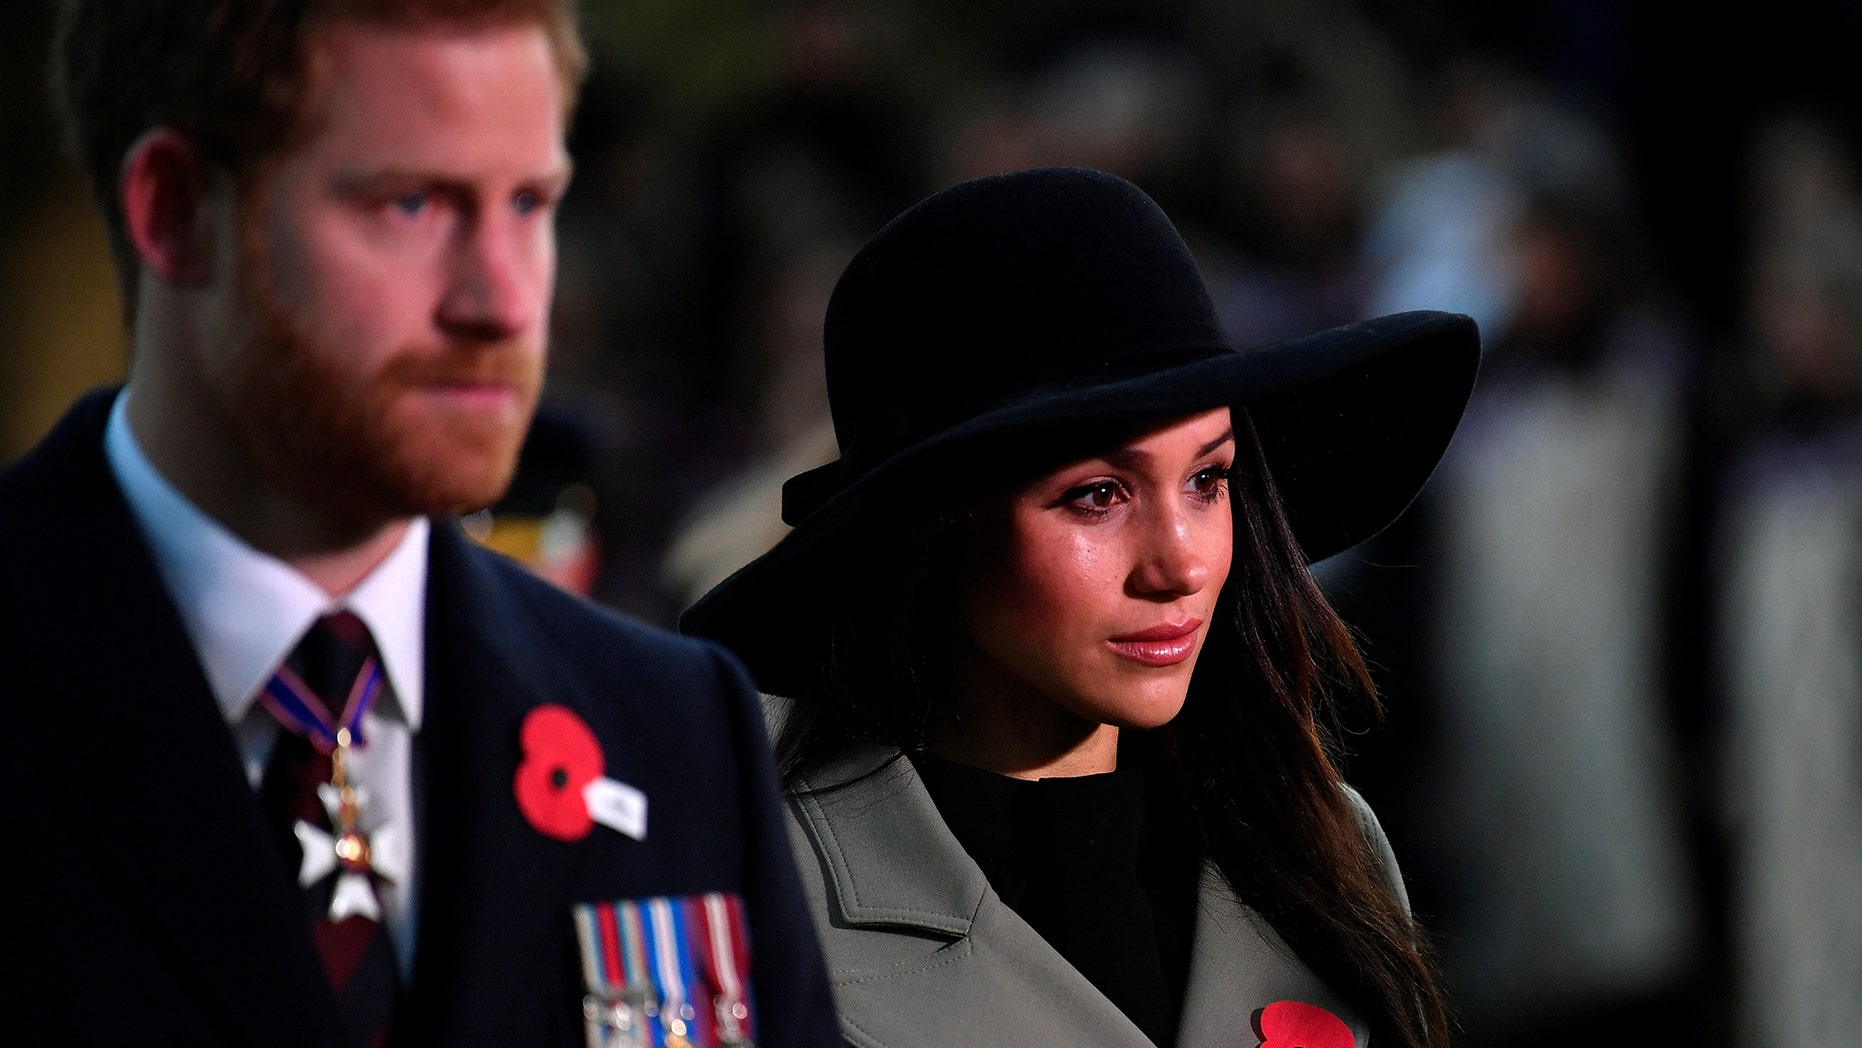 According to AP Markle's parents, Thomas Markle and Doria Ragland, will arrive during the week before the May 19 wedding so they have time to meet Harry's family. In addition to visiting the queen, the exes will meet her husband Prince Philip, Harry's father Prince Charles and his wife Camilla, and with Harry's brother Prince William and his sister-in-law Kate. Ragland will travel with her daughter by car to Windsor Castle on May 19 and Thomas Markle will walk his daughter down the aisle of St. George's Chapel for the ceremony.